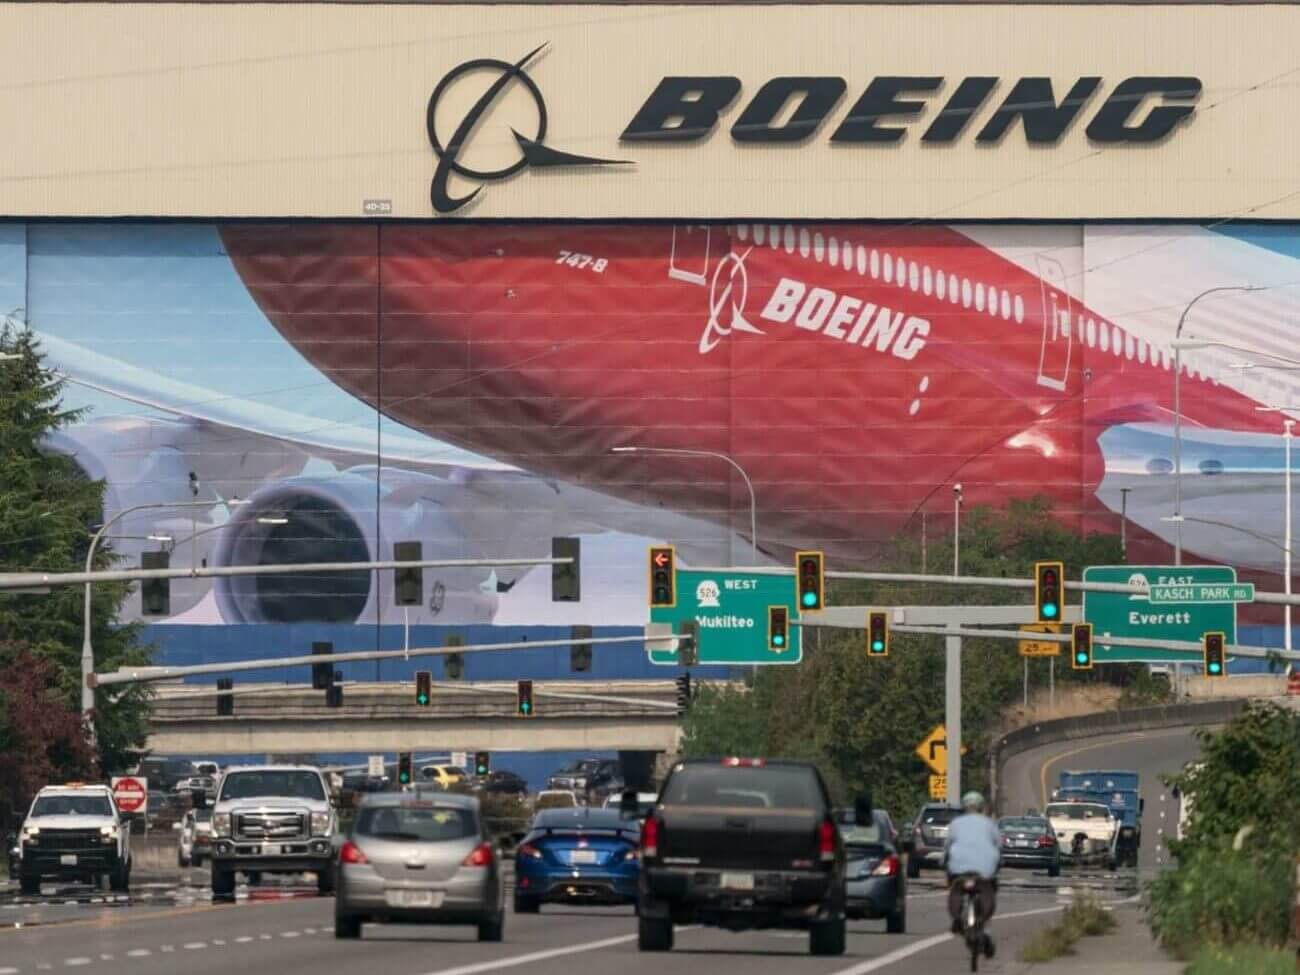 Boeing Is the Most up-to-date Company to Whisk a Hostile Alternate Ambiance